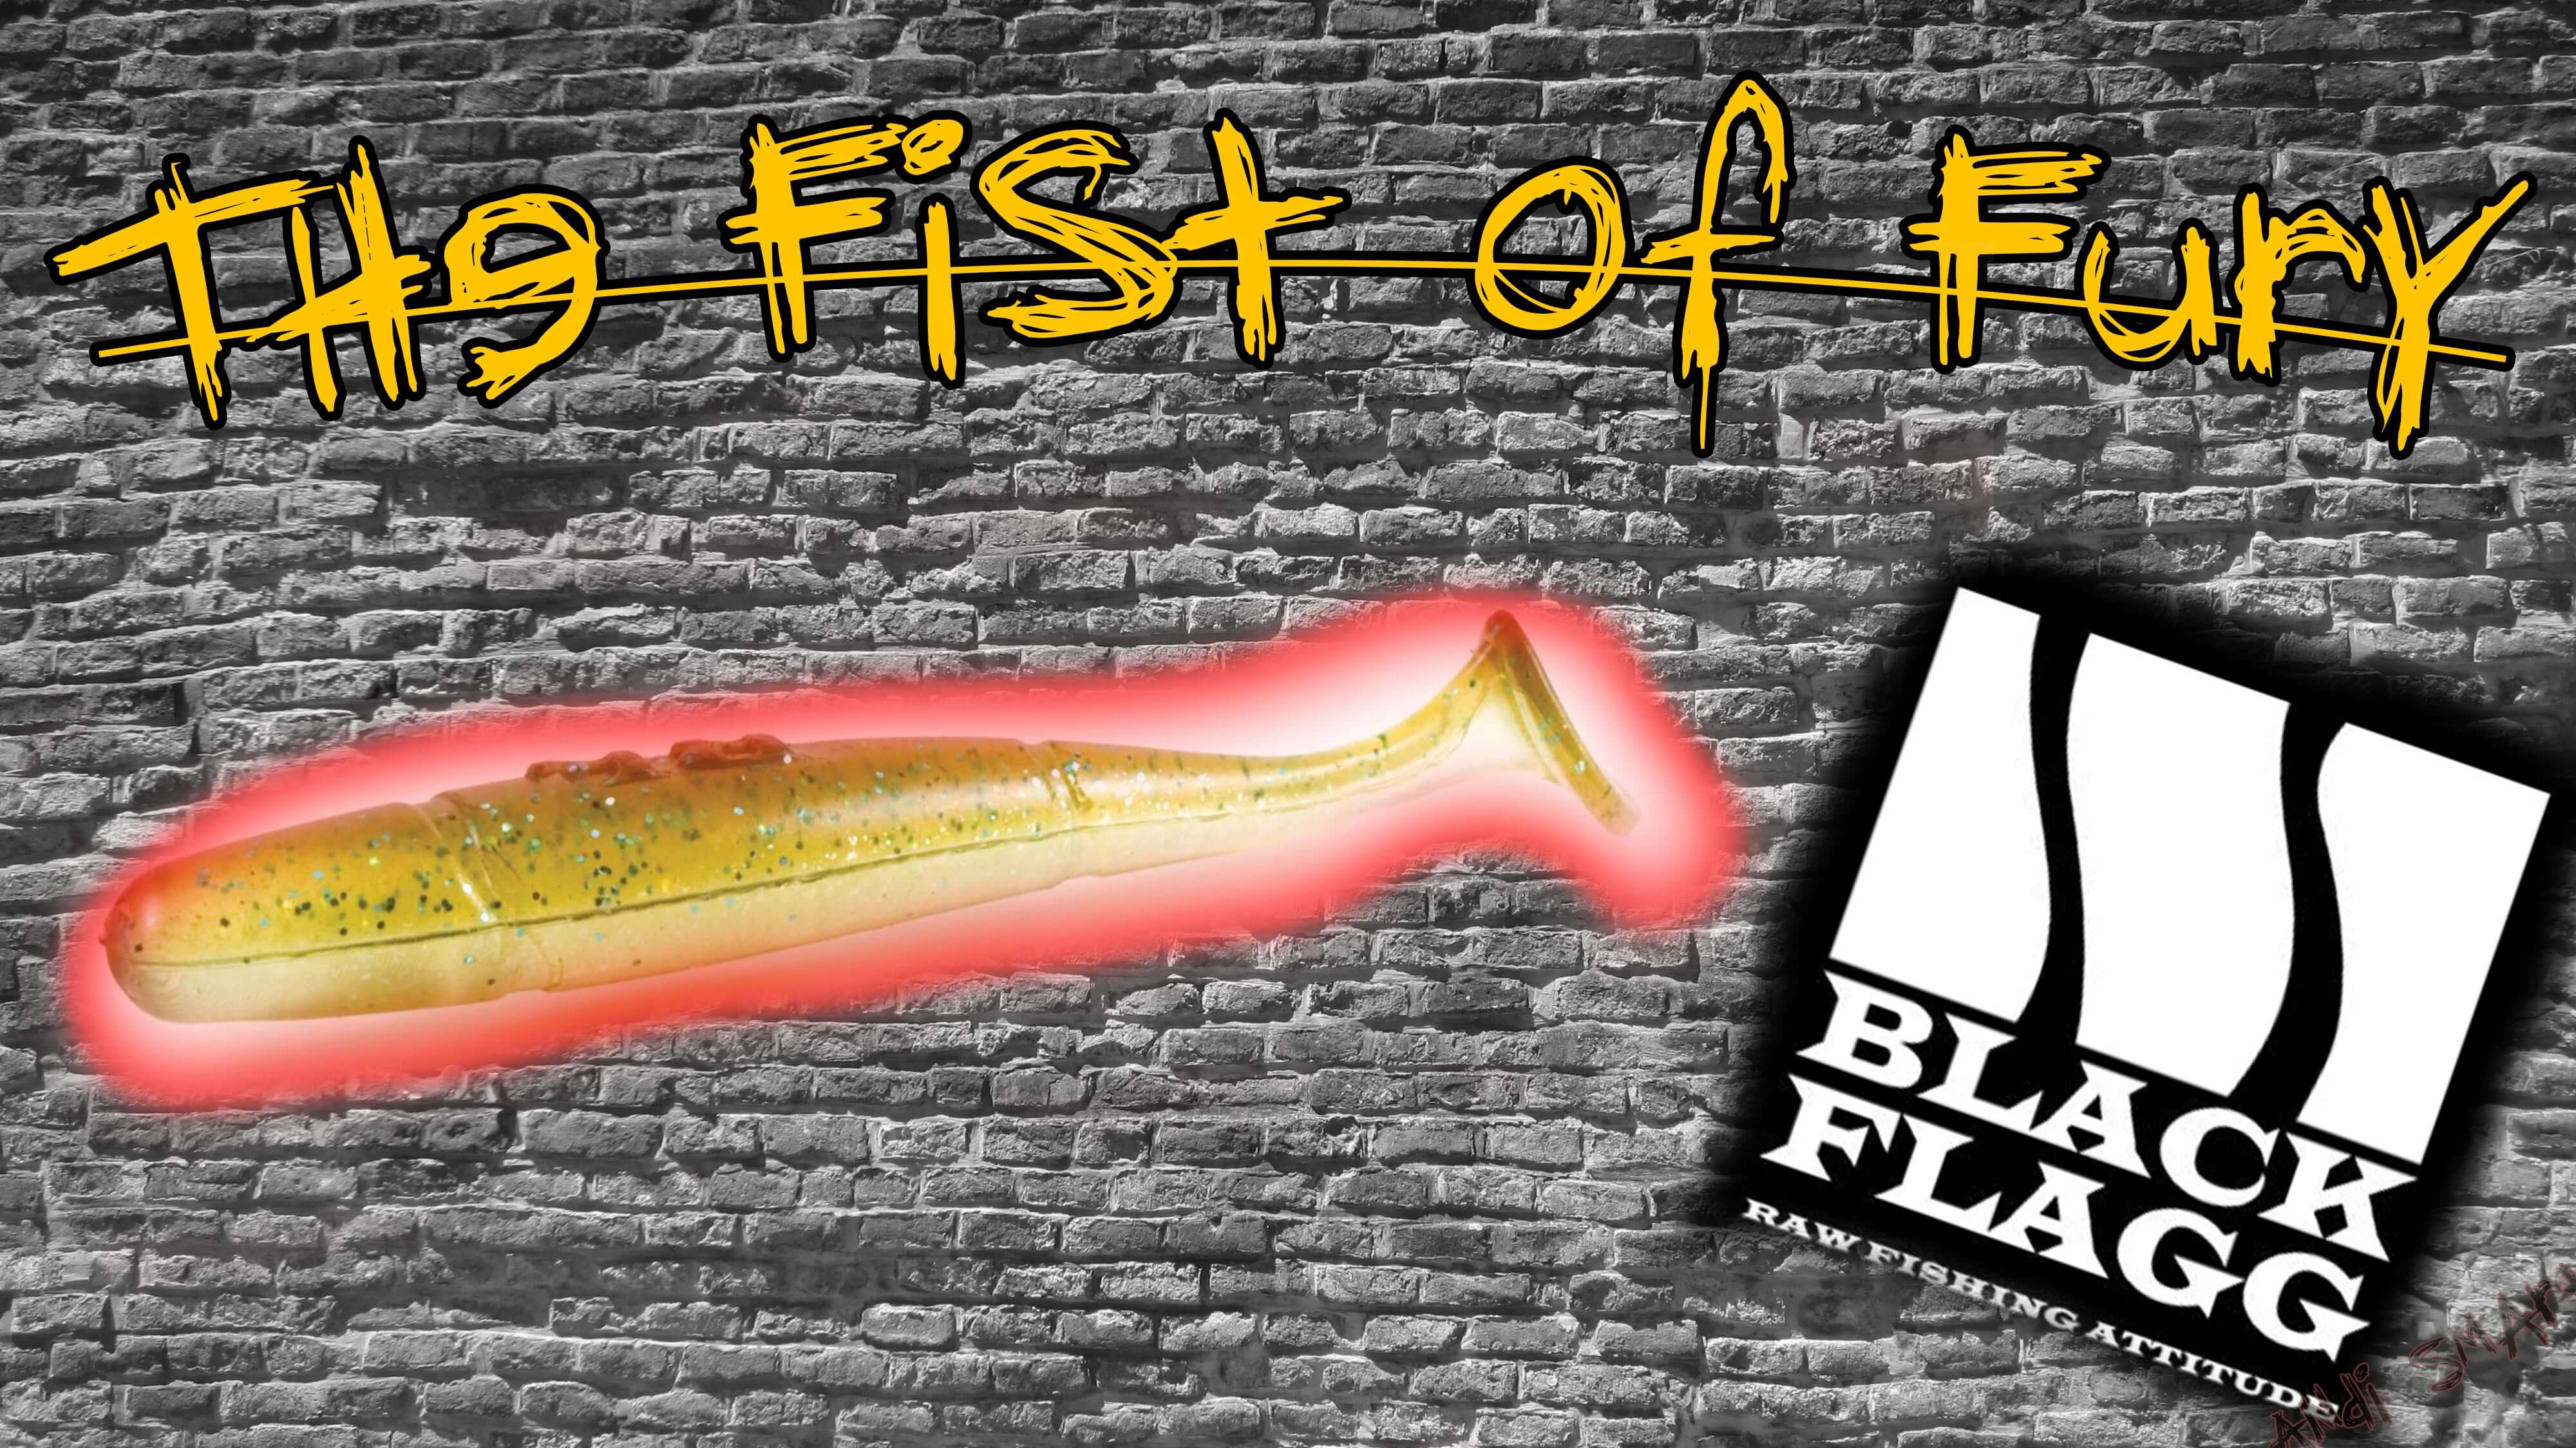 The Fist of Fury – Der neue Black Flagg Slikk Shad